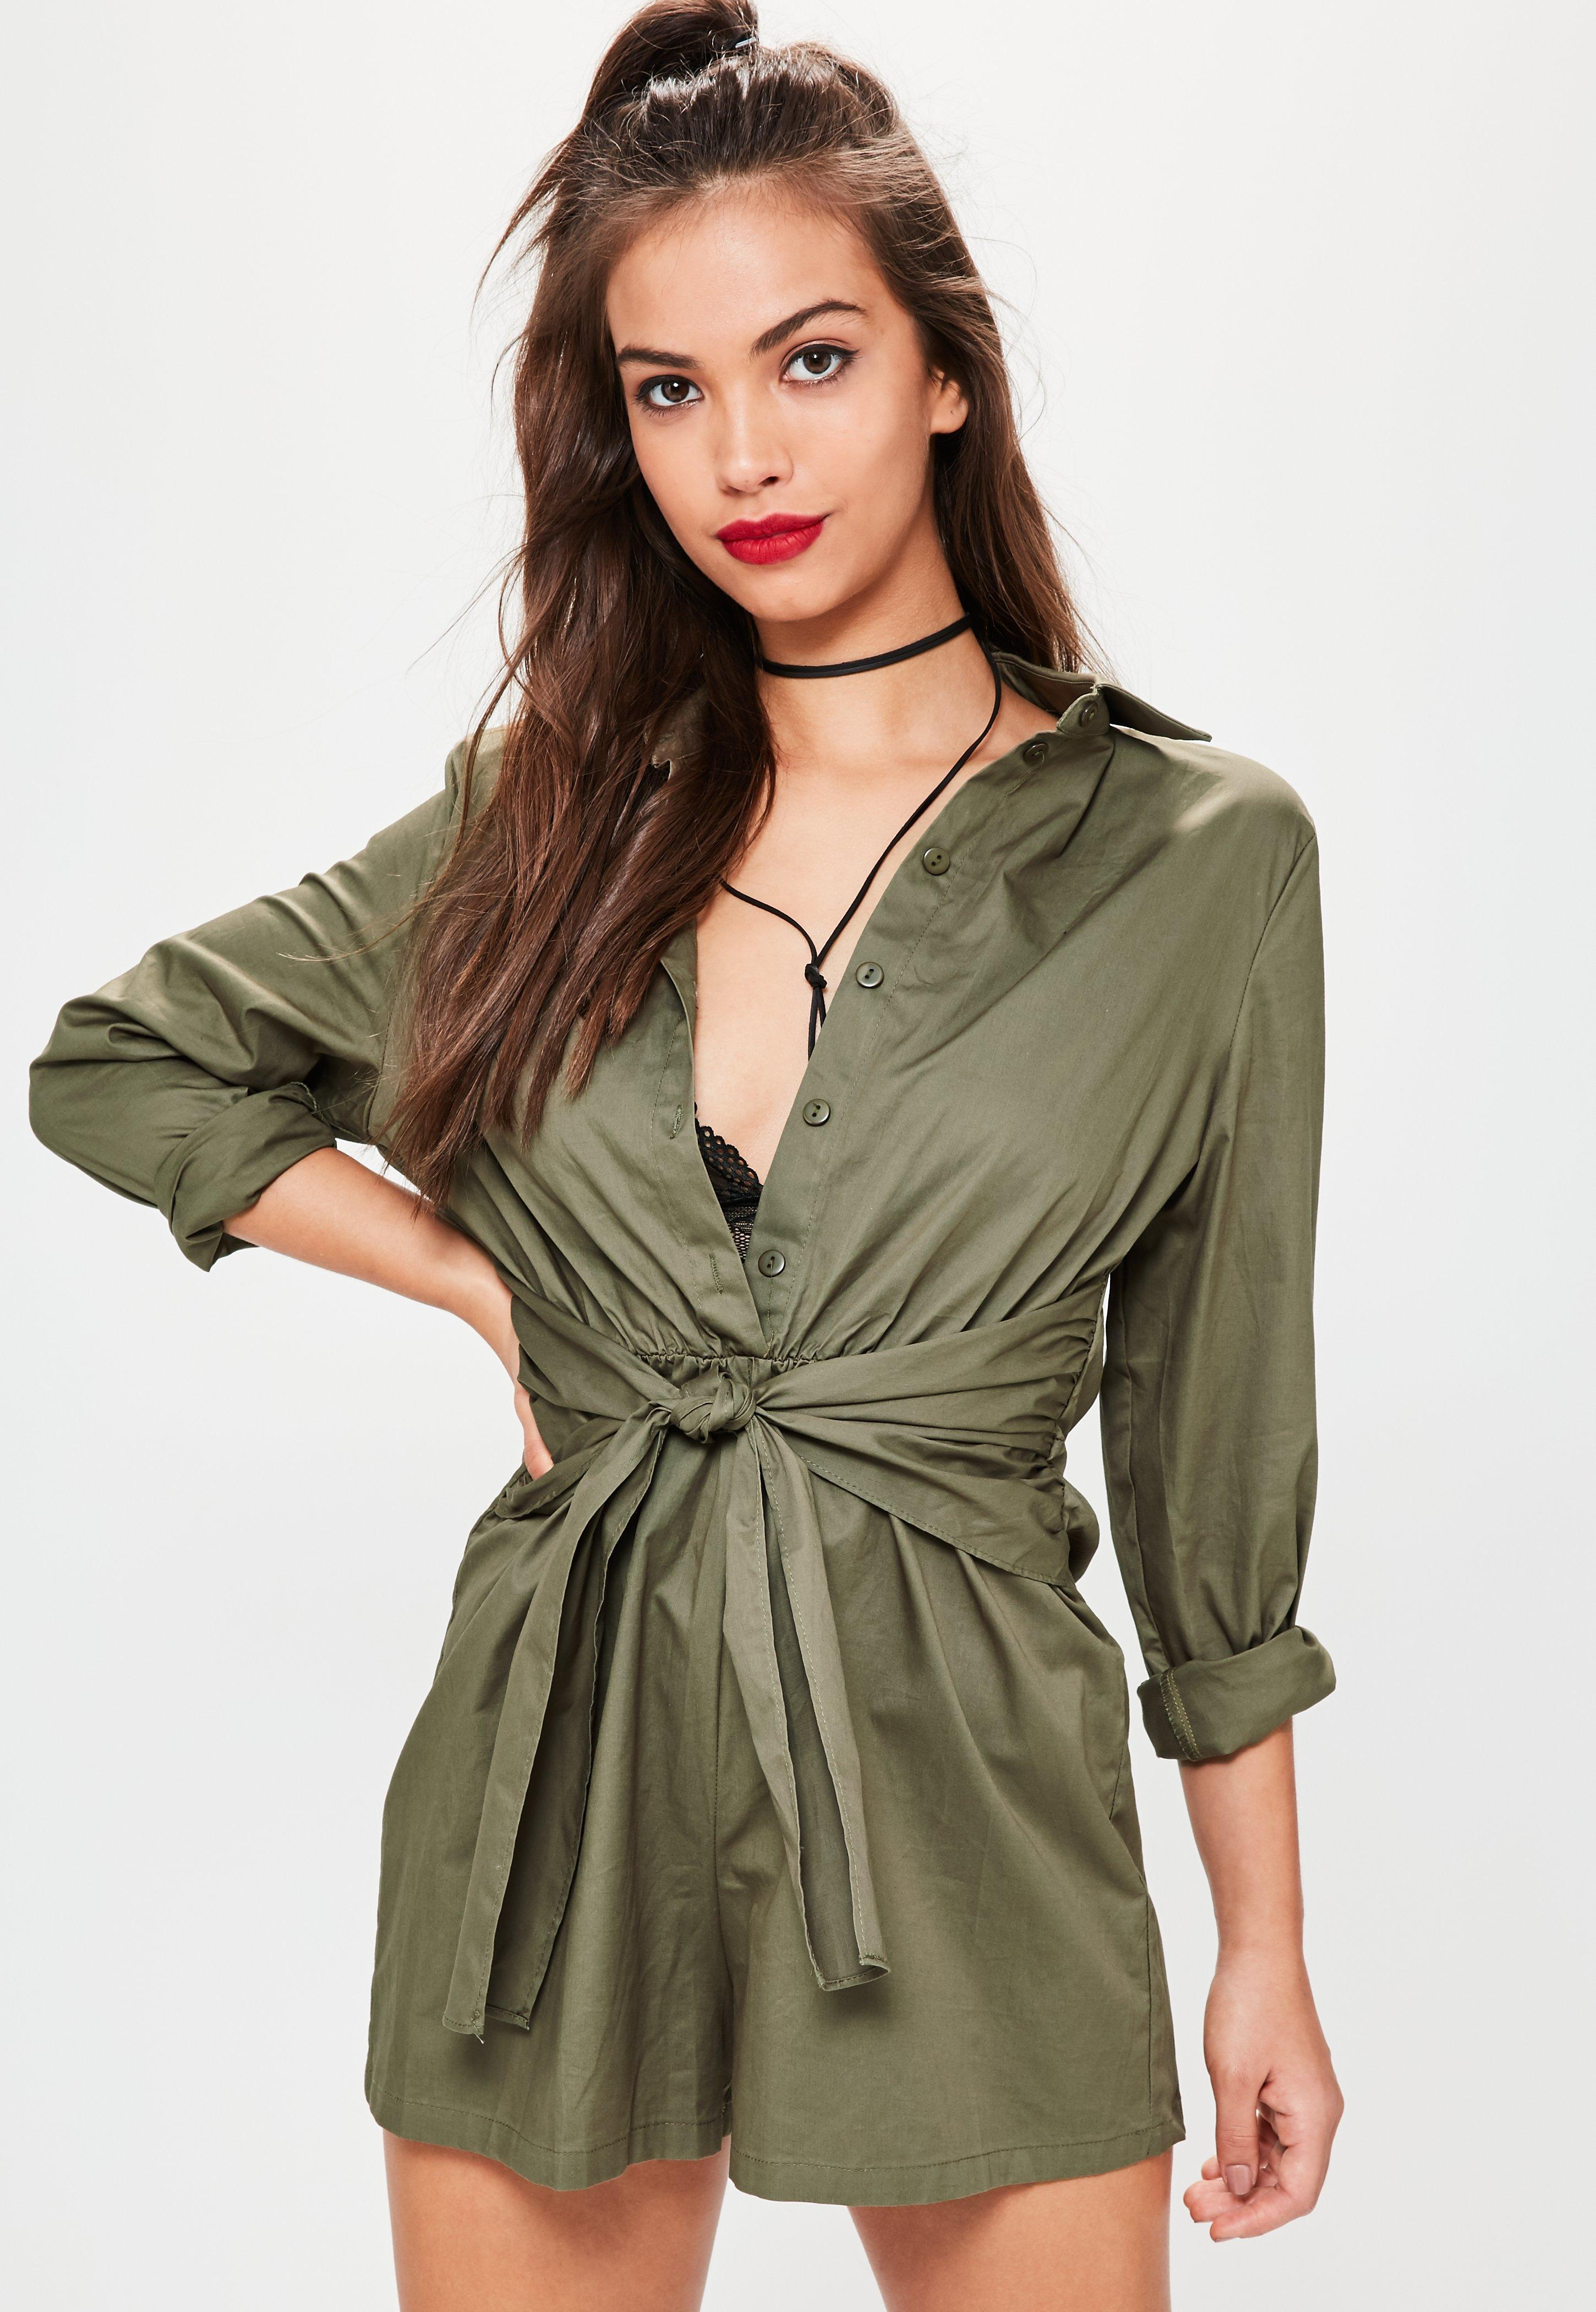 54131daefb3 Lyst - Missguided Khaki Tie Waist Shirt Playsuit in Green